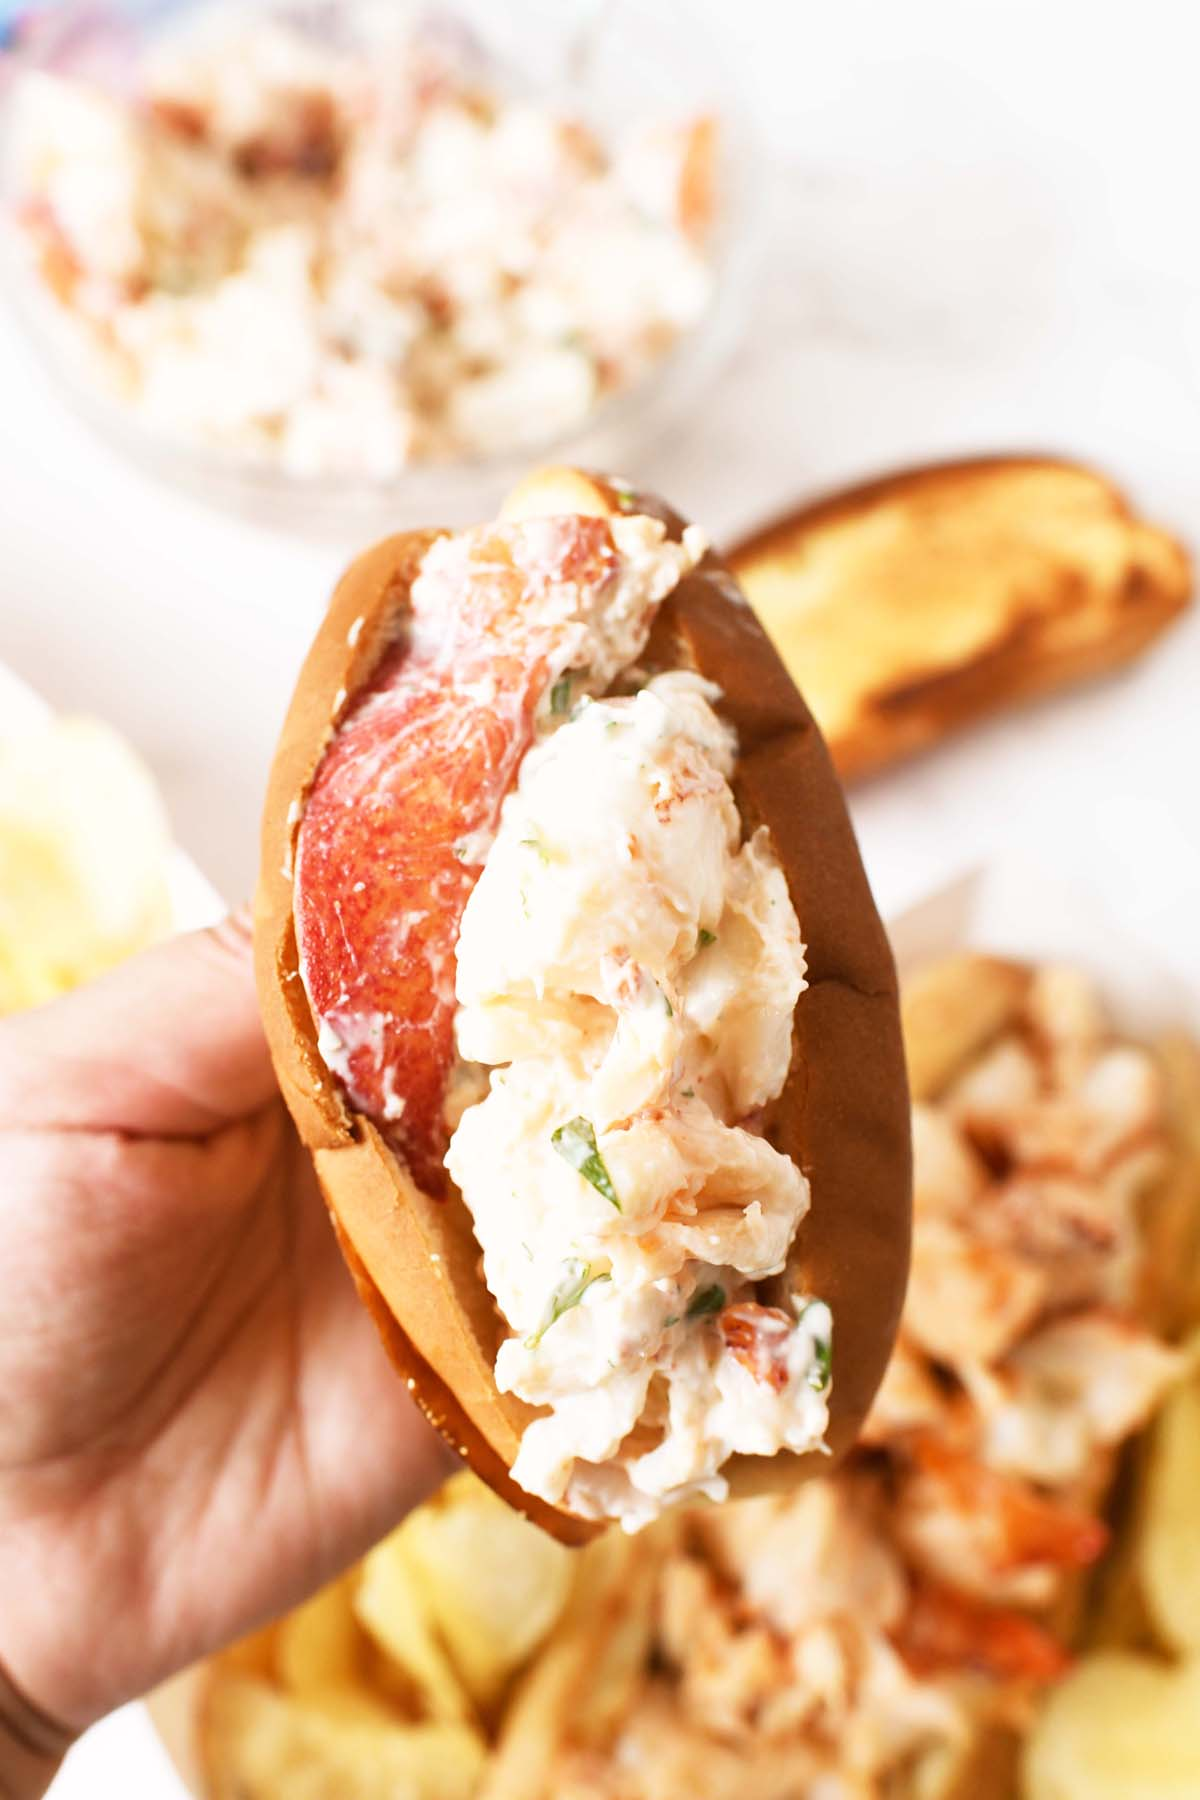 Lobster salad stuffed in a toasted min hot dog bun in a hand.